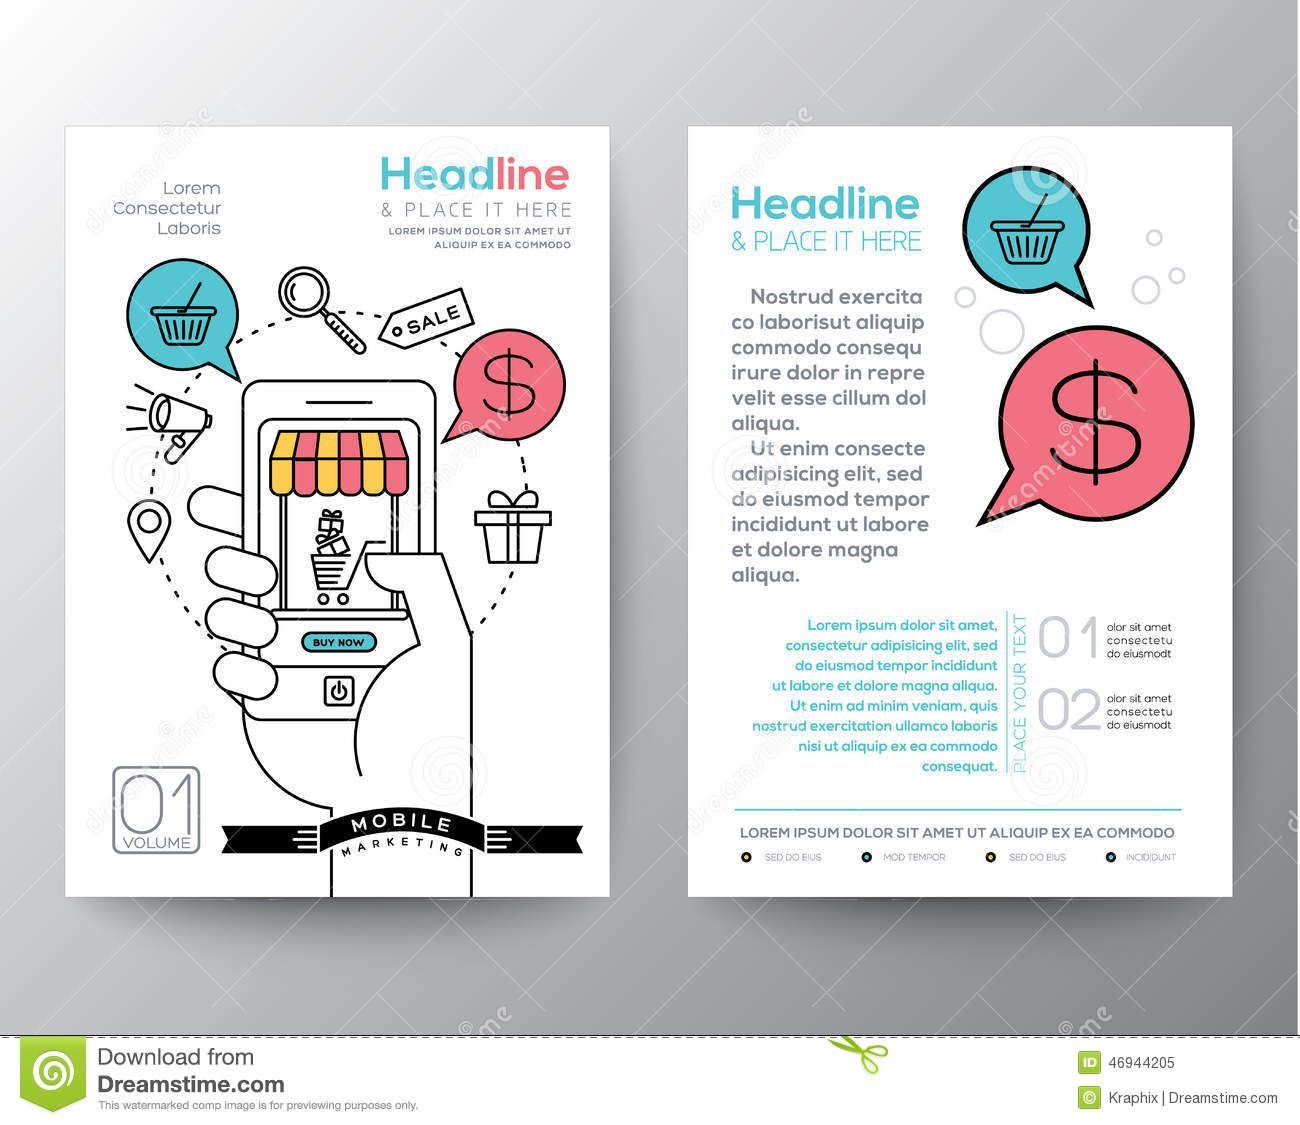 Marketing Brochure Templates Set 1 | template | Pinterest ...